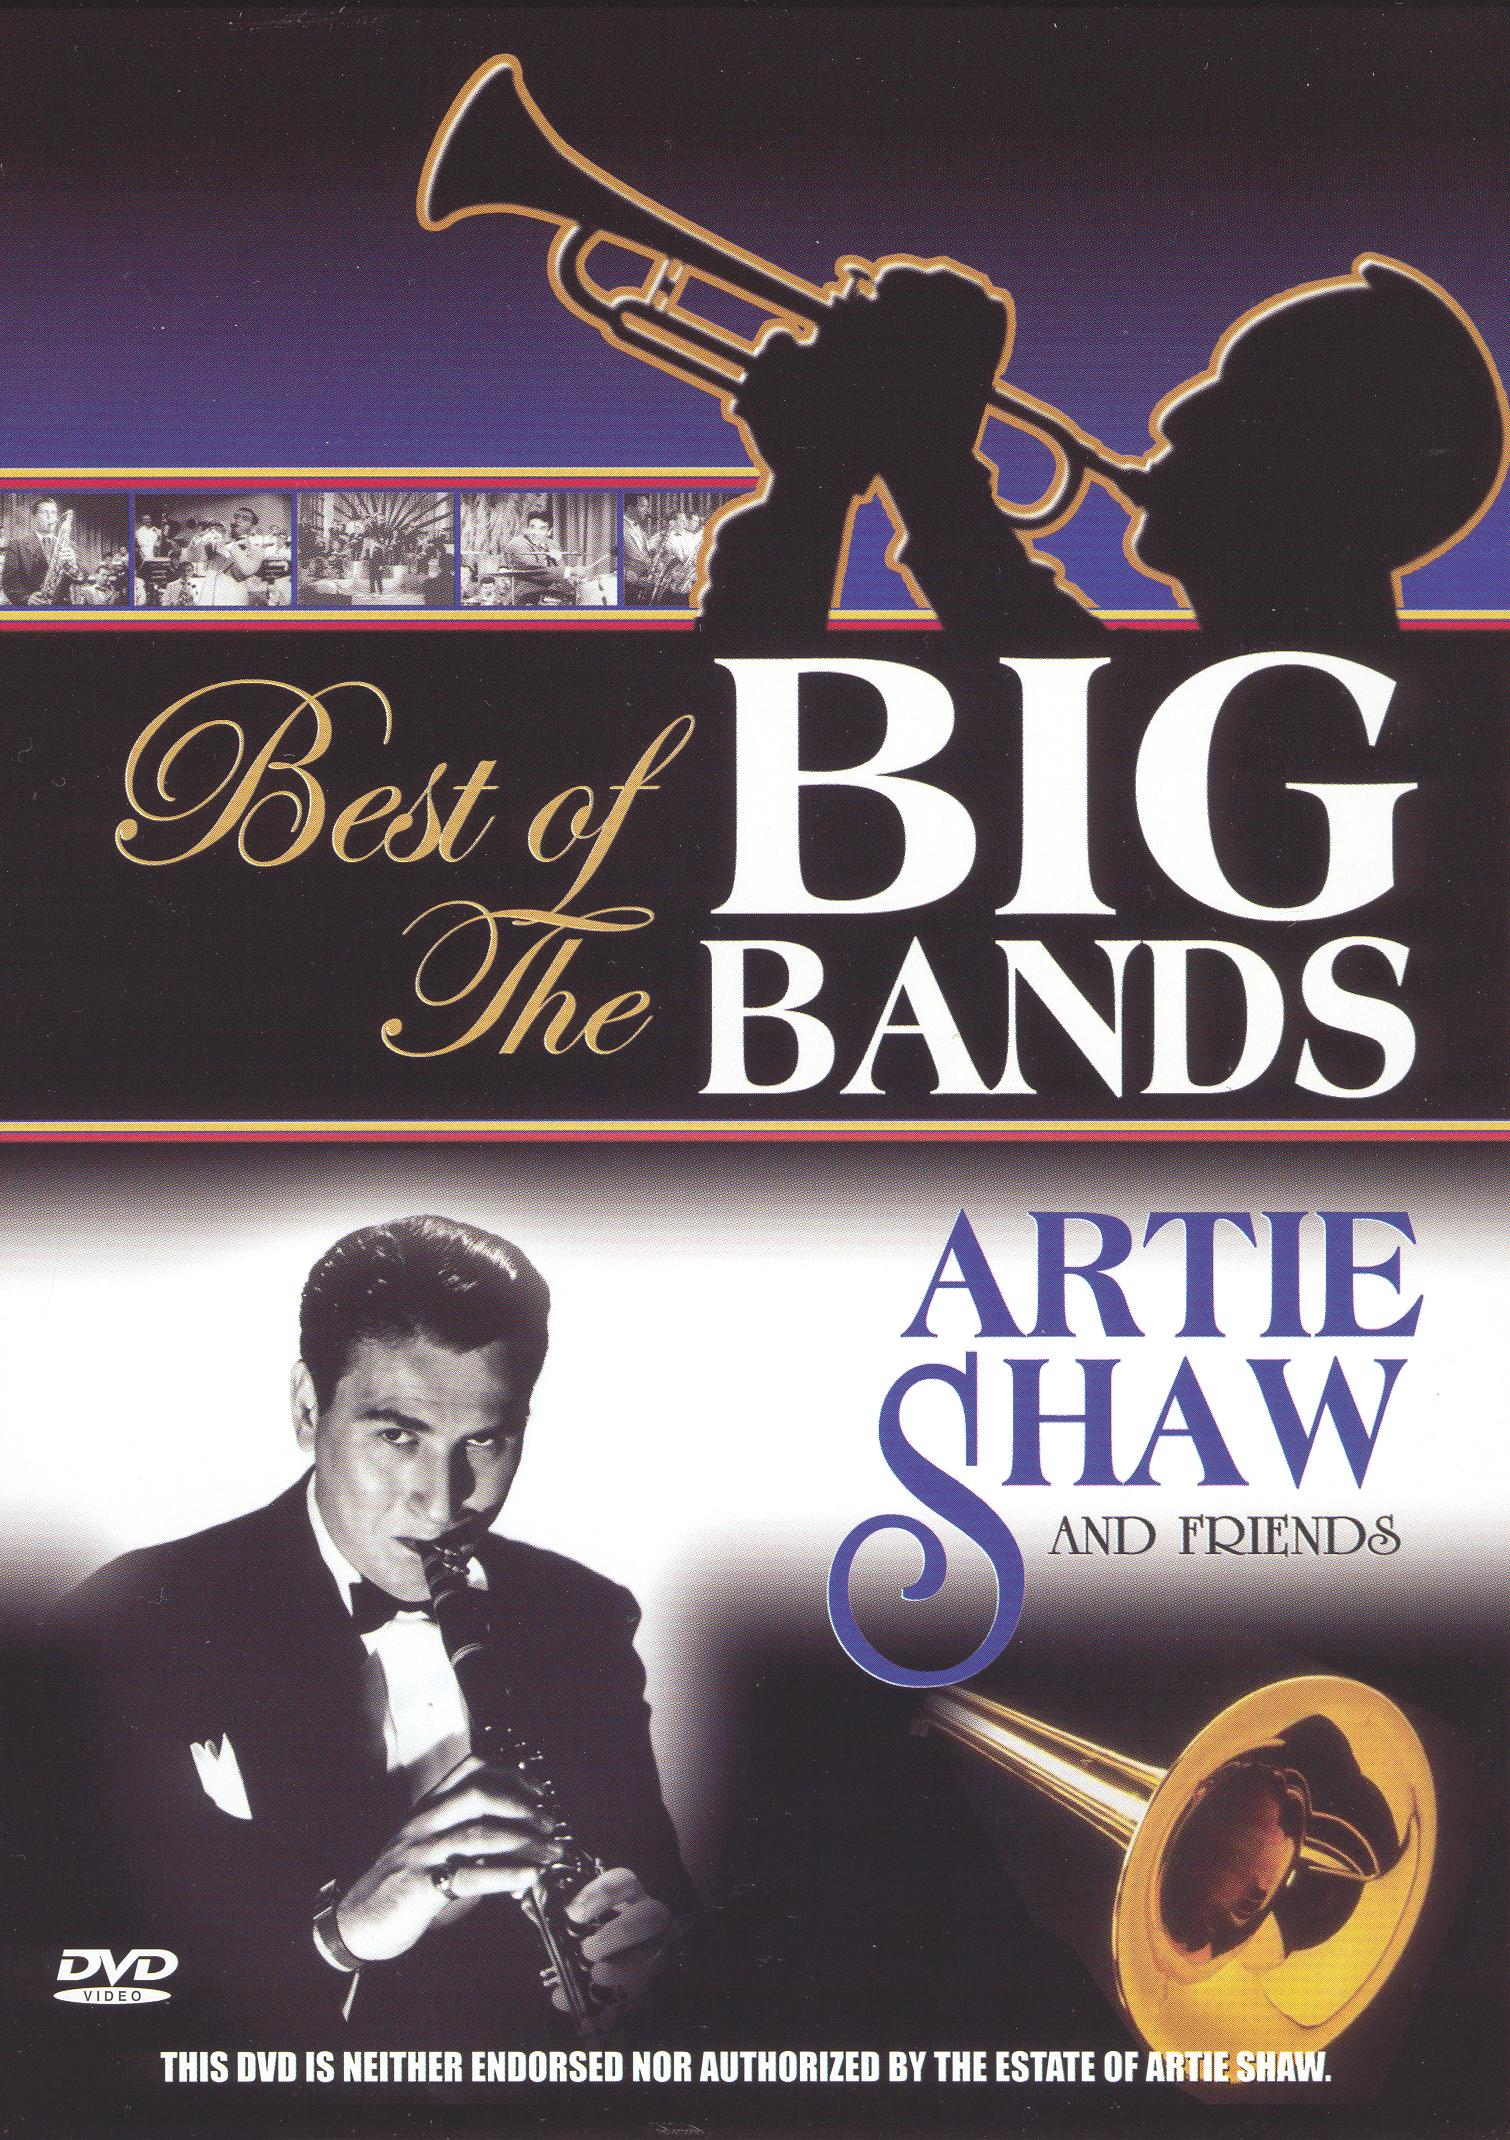 Best of the Big Bands